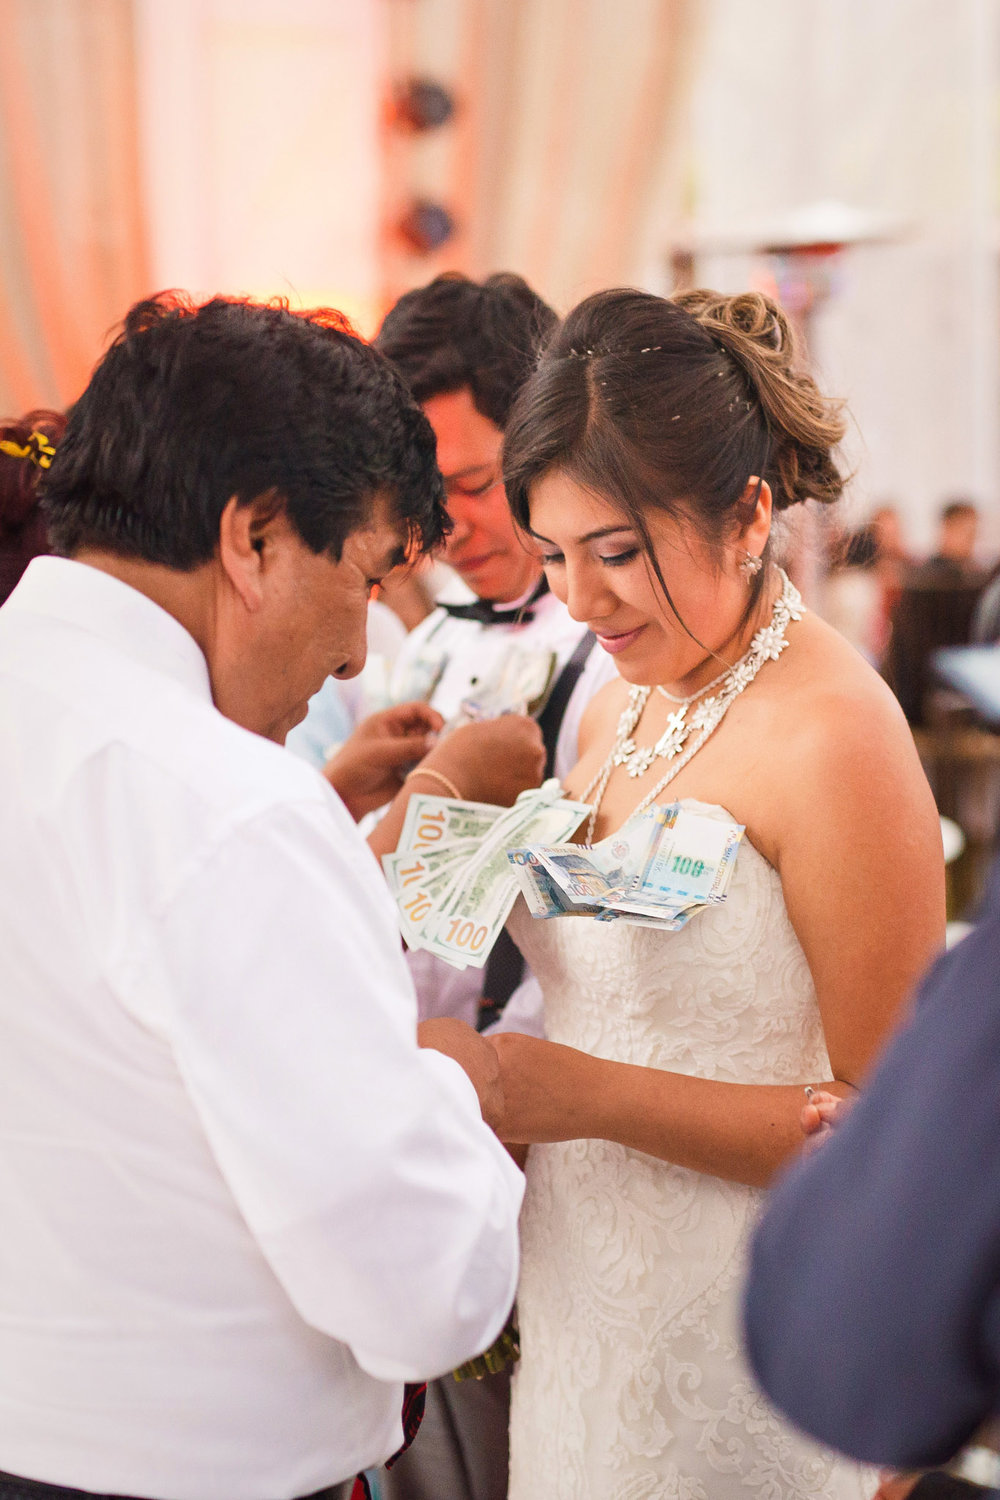 Wedding-Travellers-Destination-Wedding-Peru-Cusco-Hacienda-Sarapampa-Sacred-Valley-tradition-money